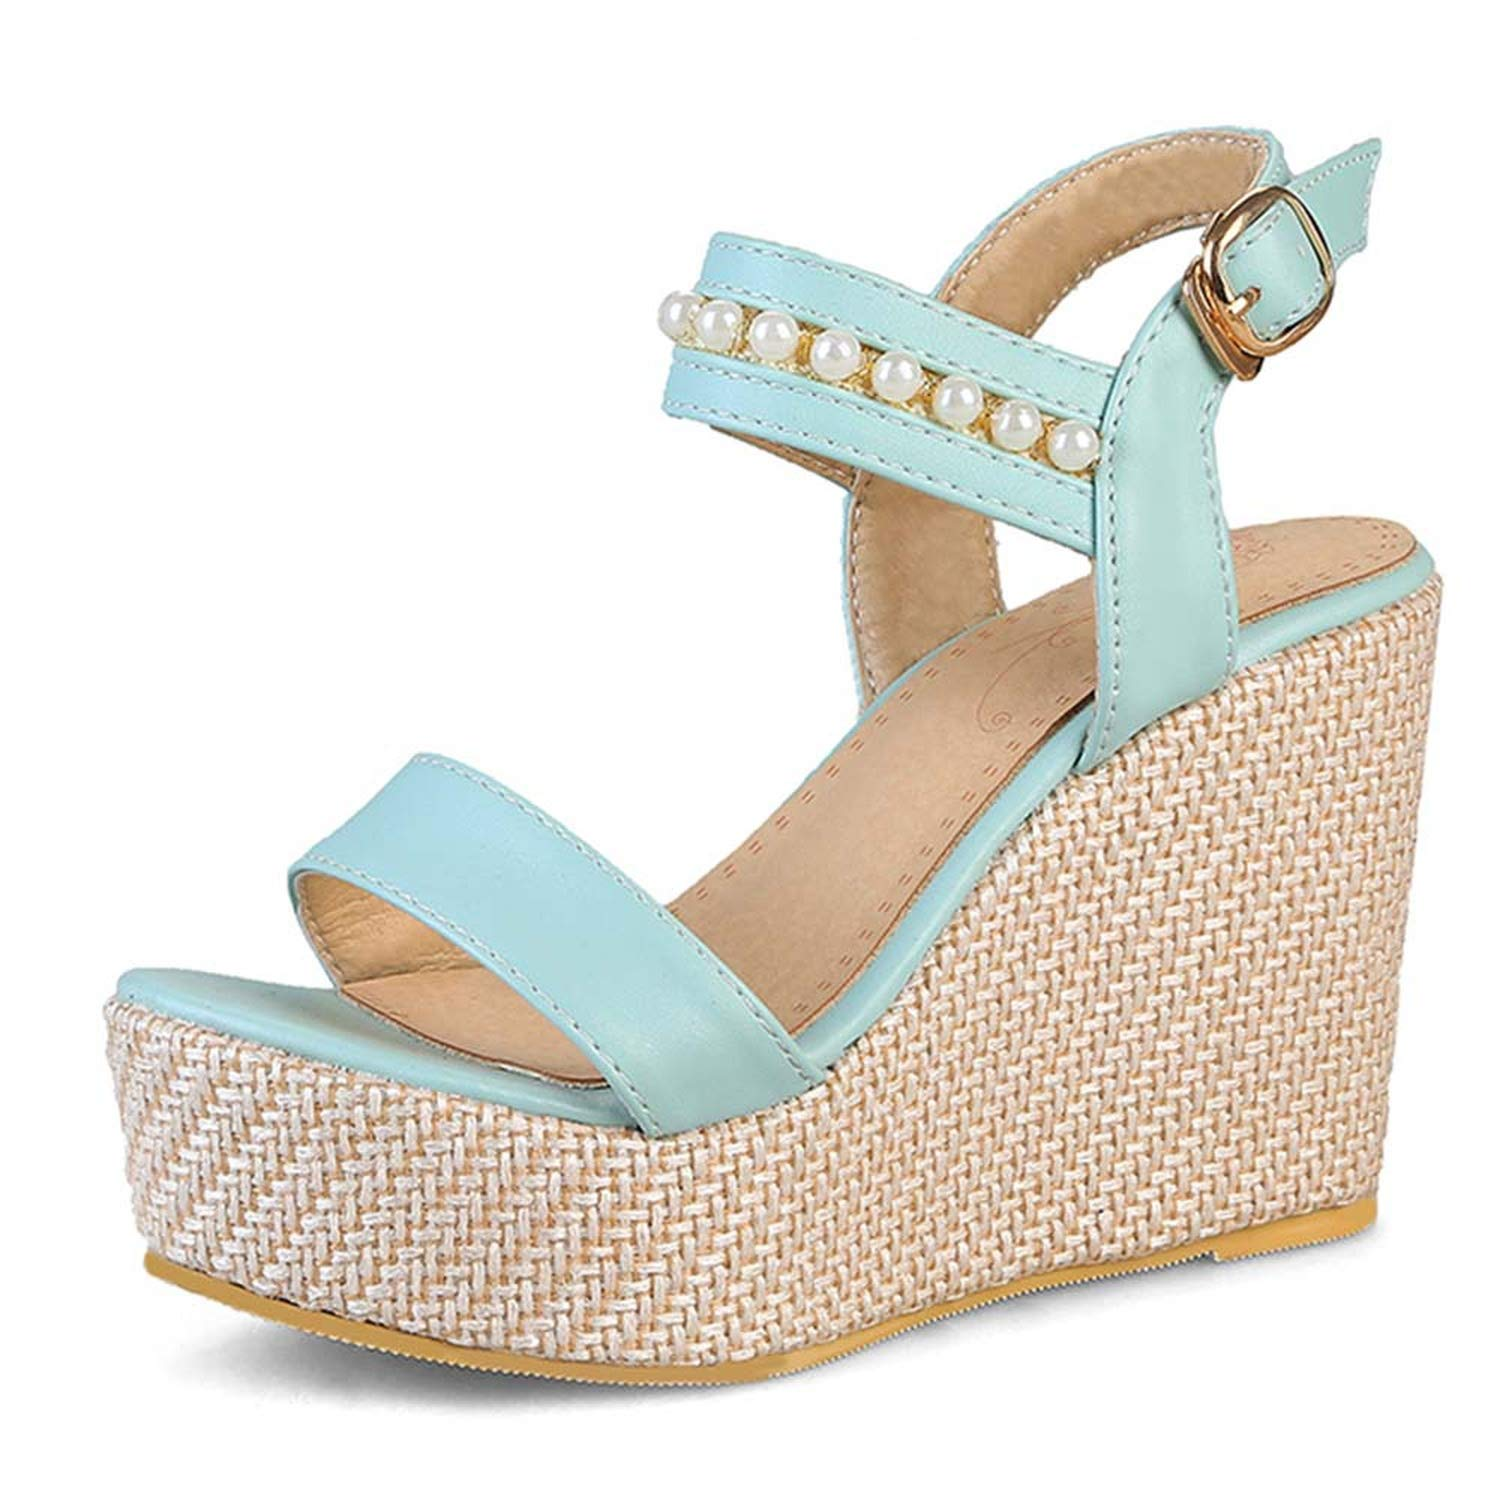 bluee Buckle Strap Summer Sandals for Women High Wedges Heels Open Toe Platform shoes